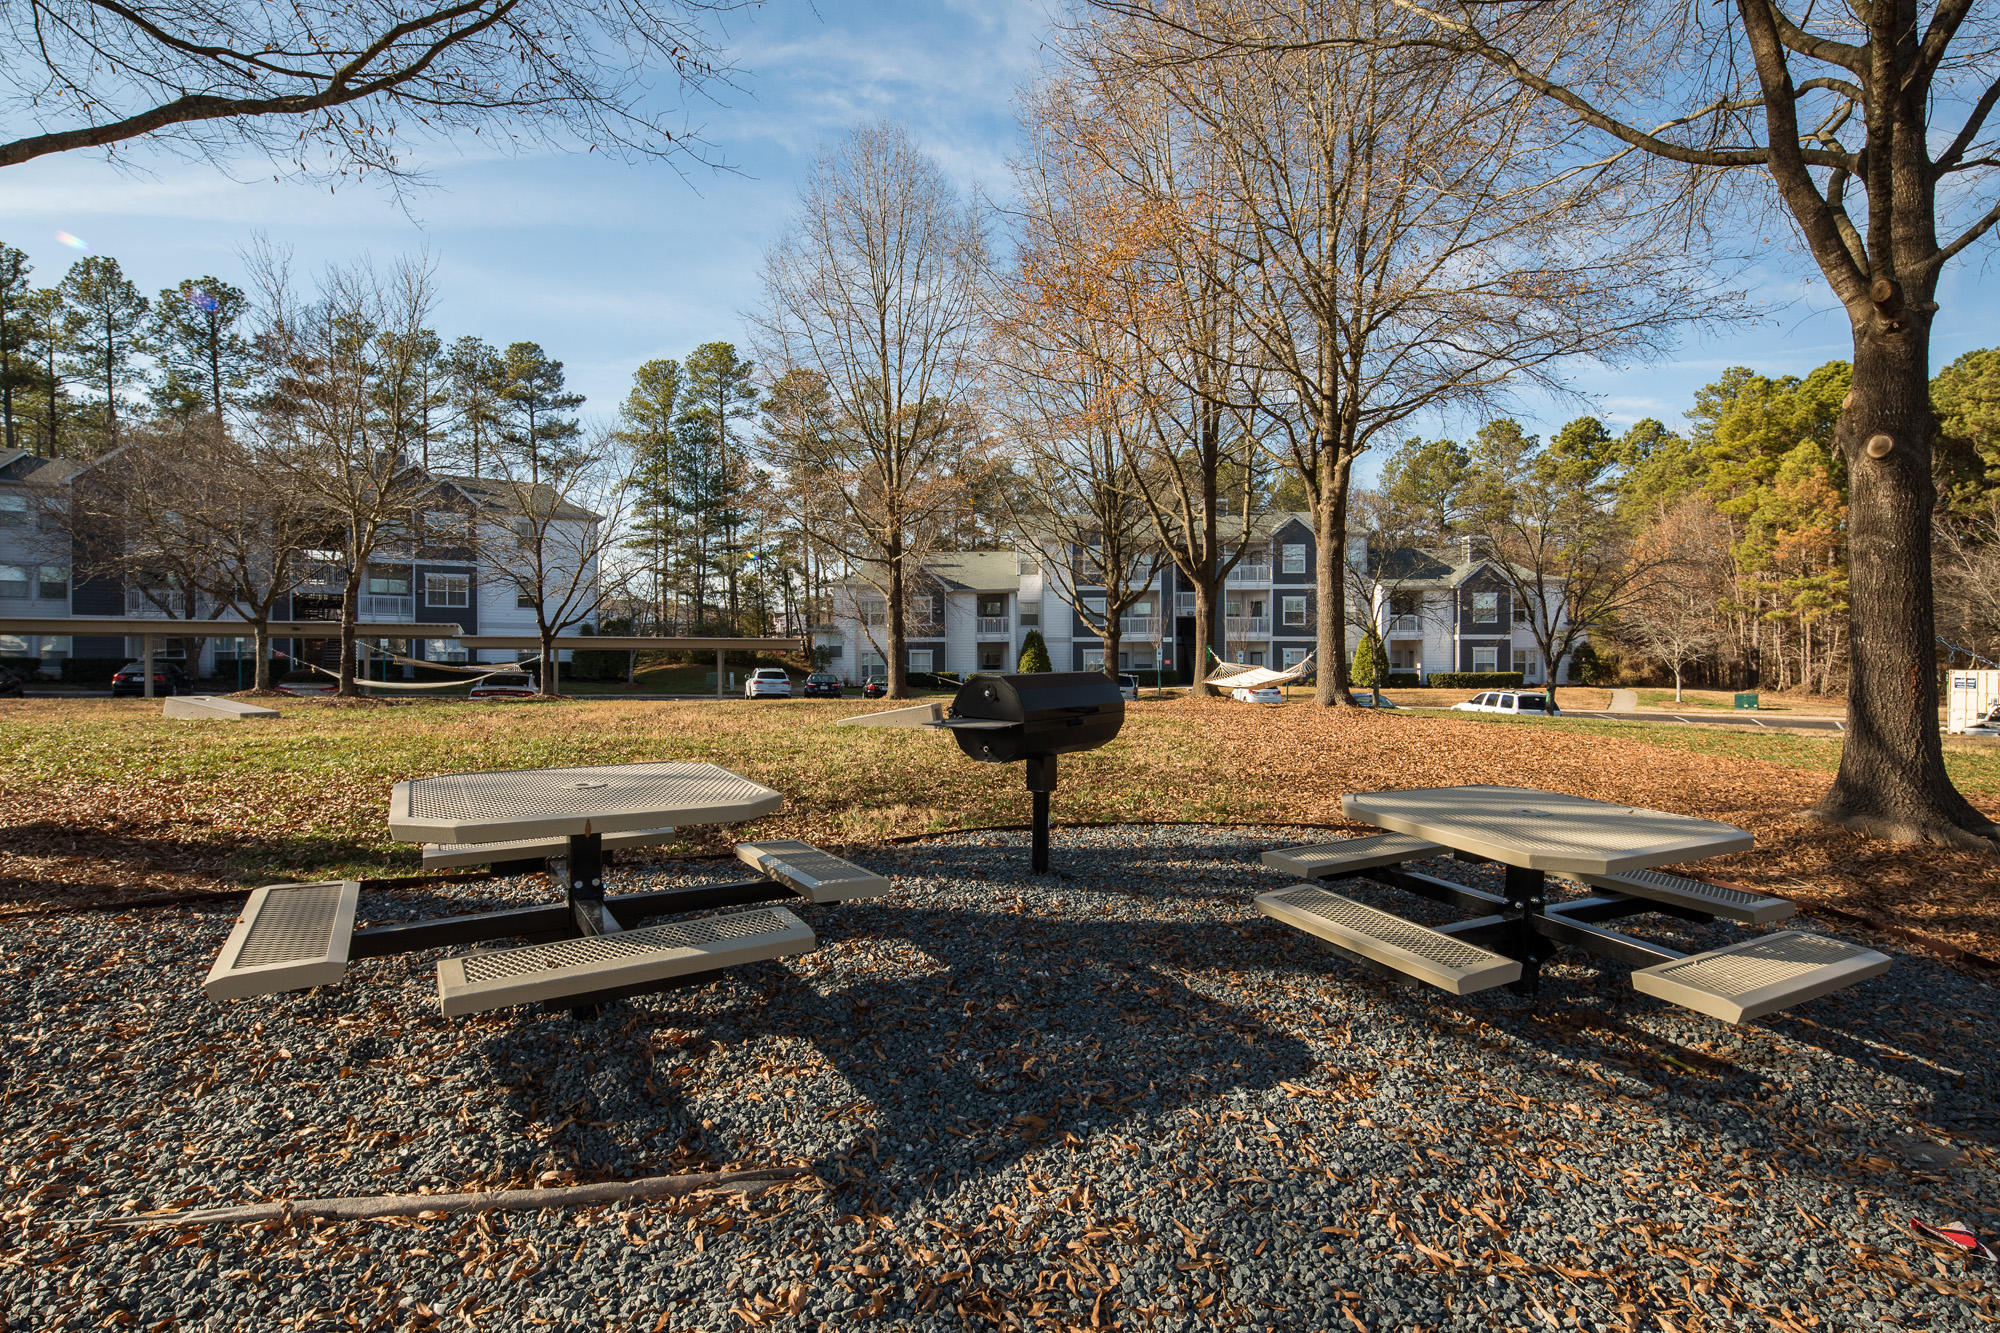 Arboretum at Southpoint by Cortland image 6